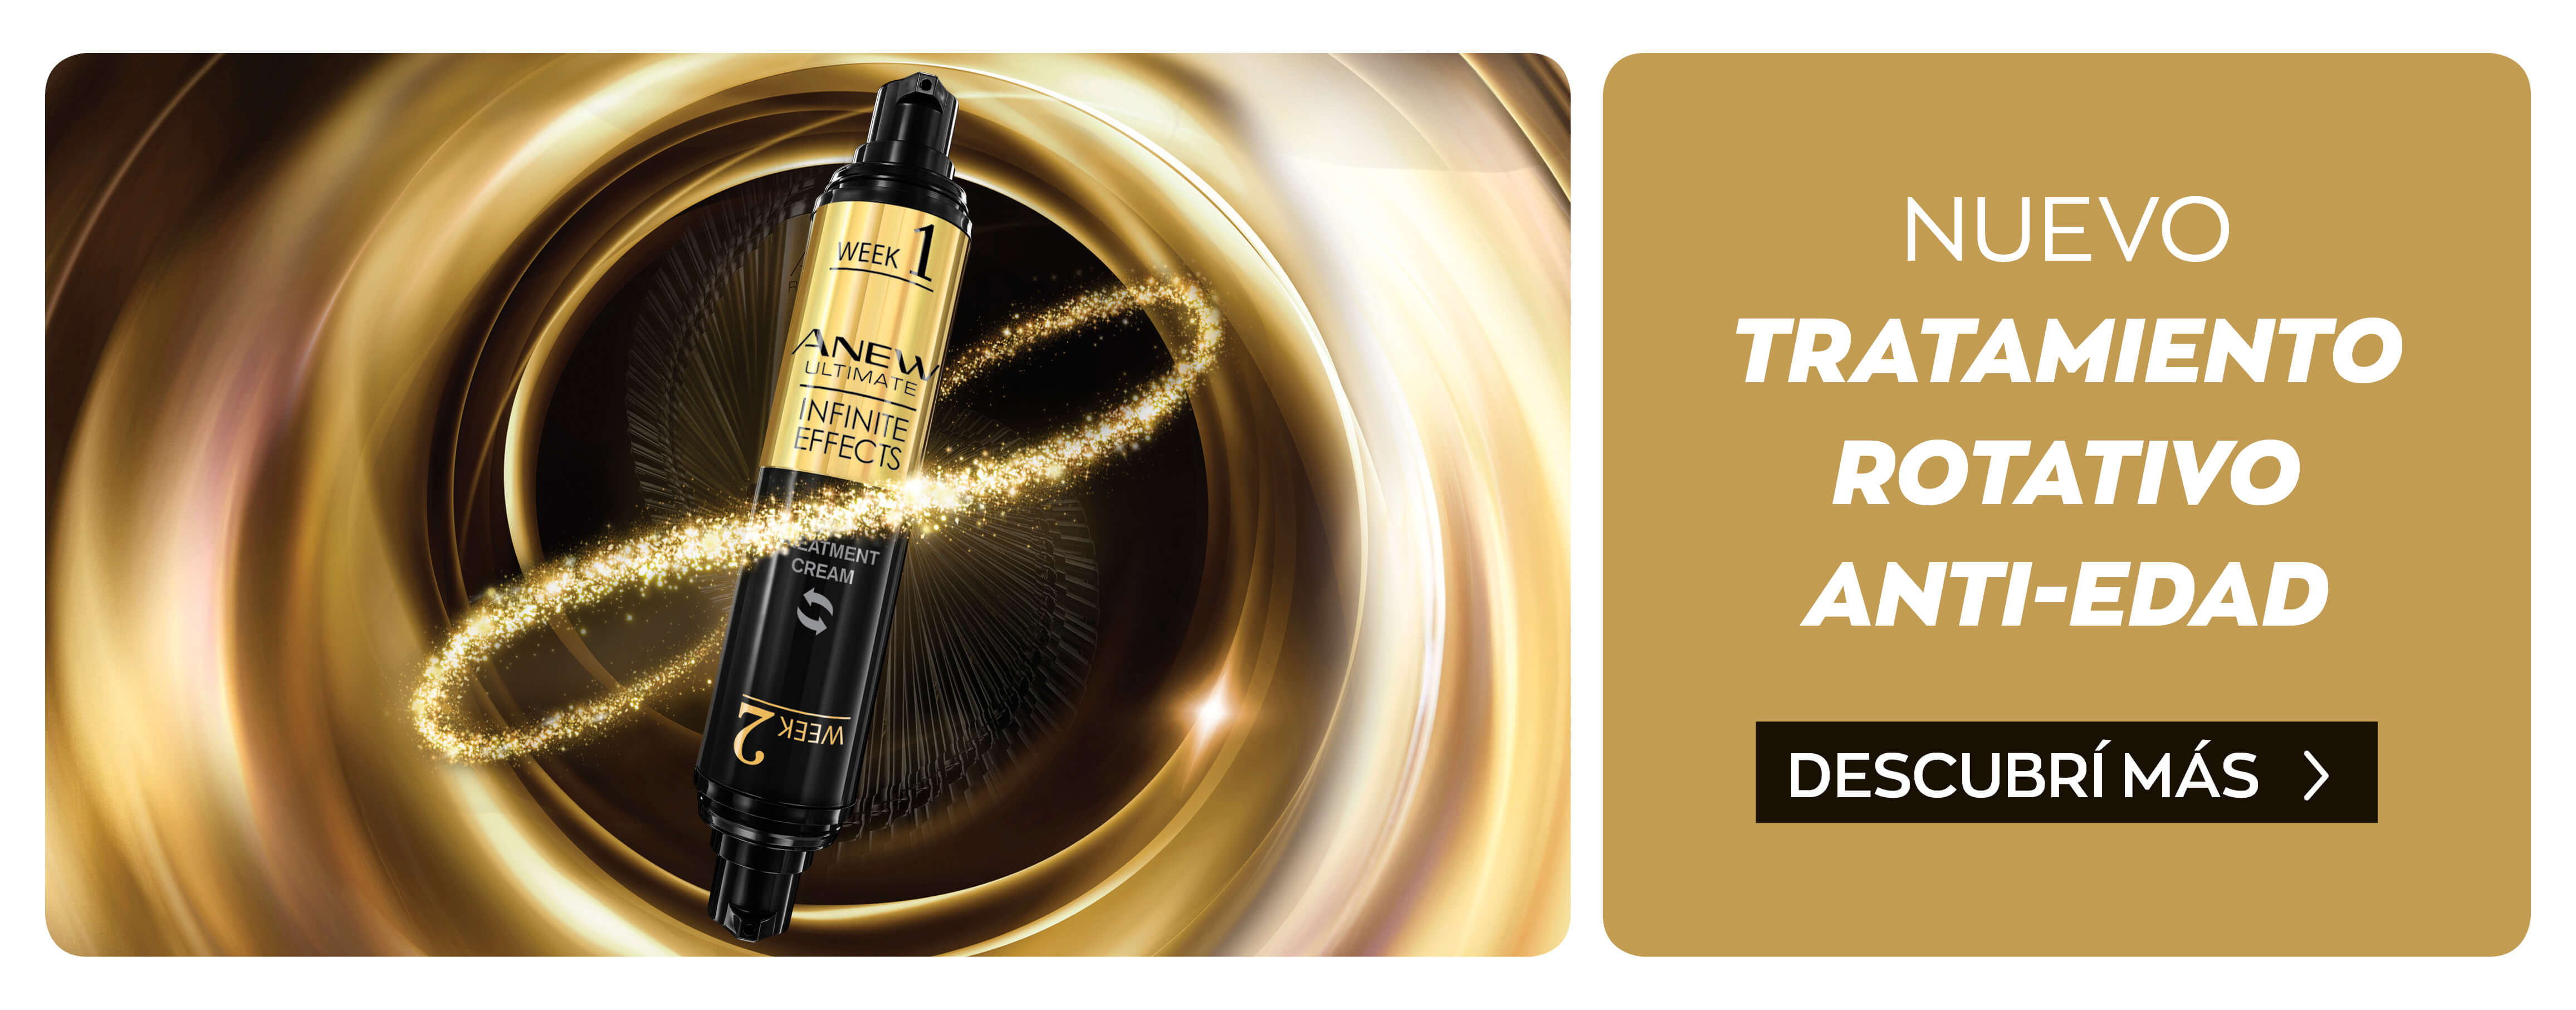 Anew Ultimate Infinite Efects